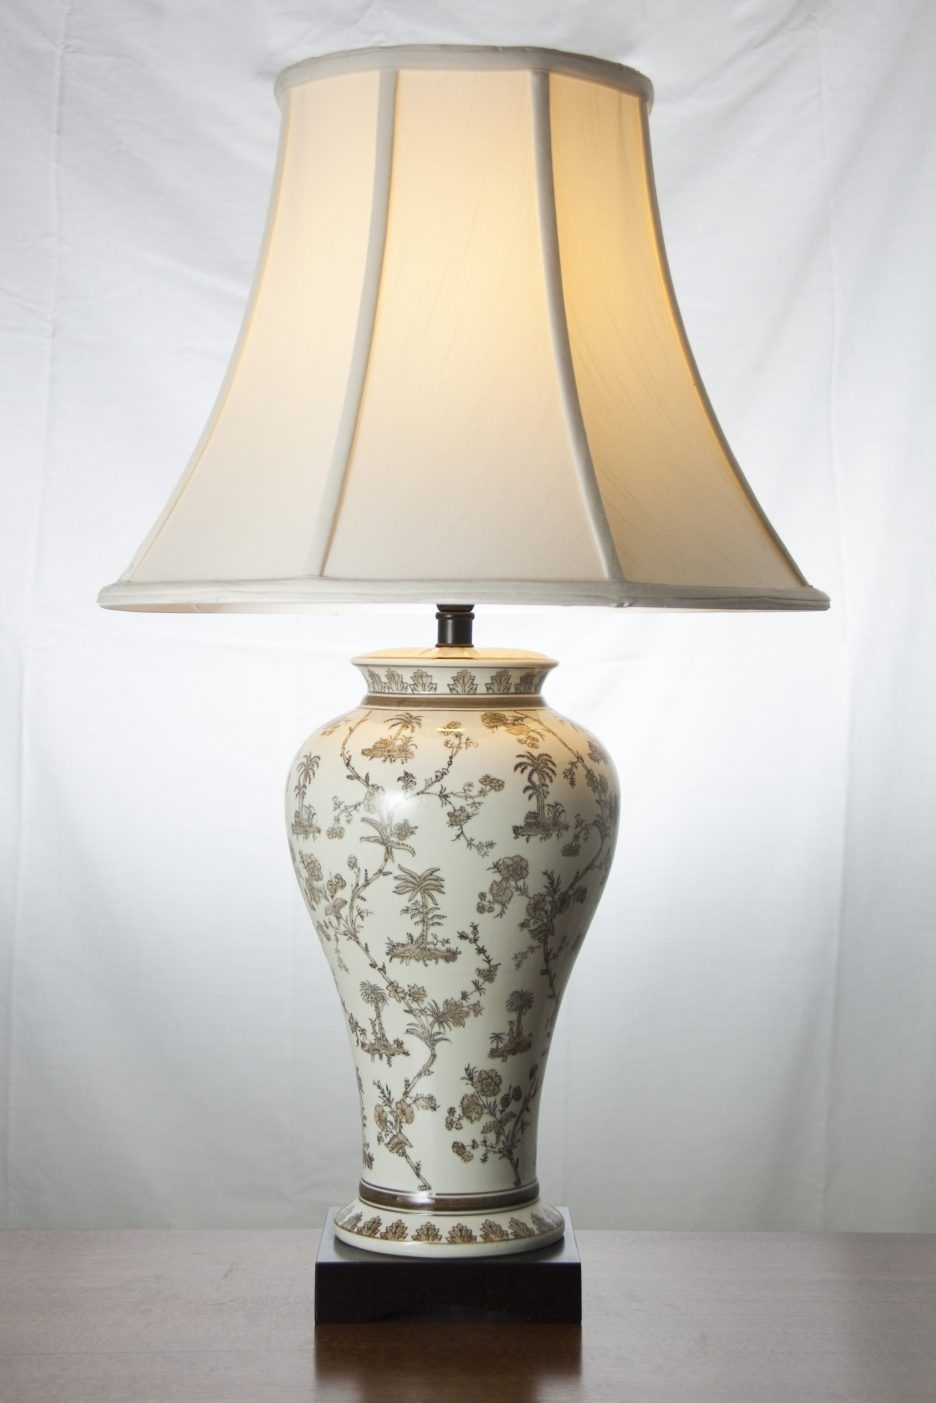 Traditional Living Room Table Lamps Interior Design, Classic Table Regarding Table Lamps For Traditional Living Room (View 12 of 15)